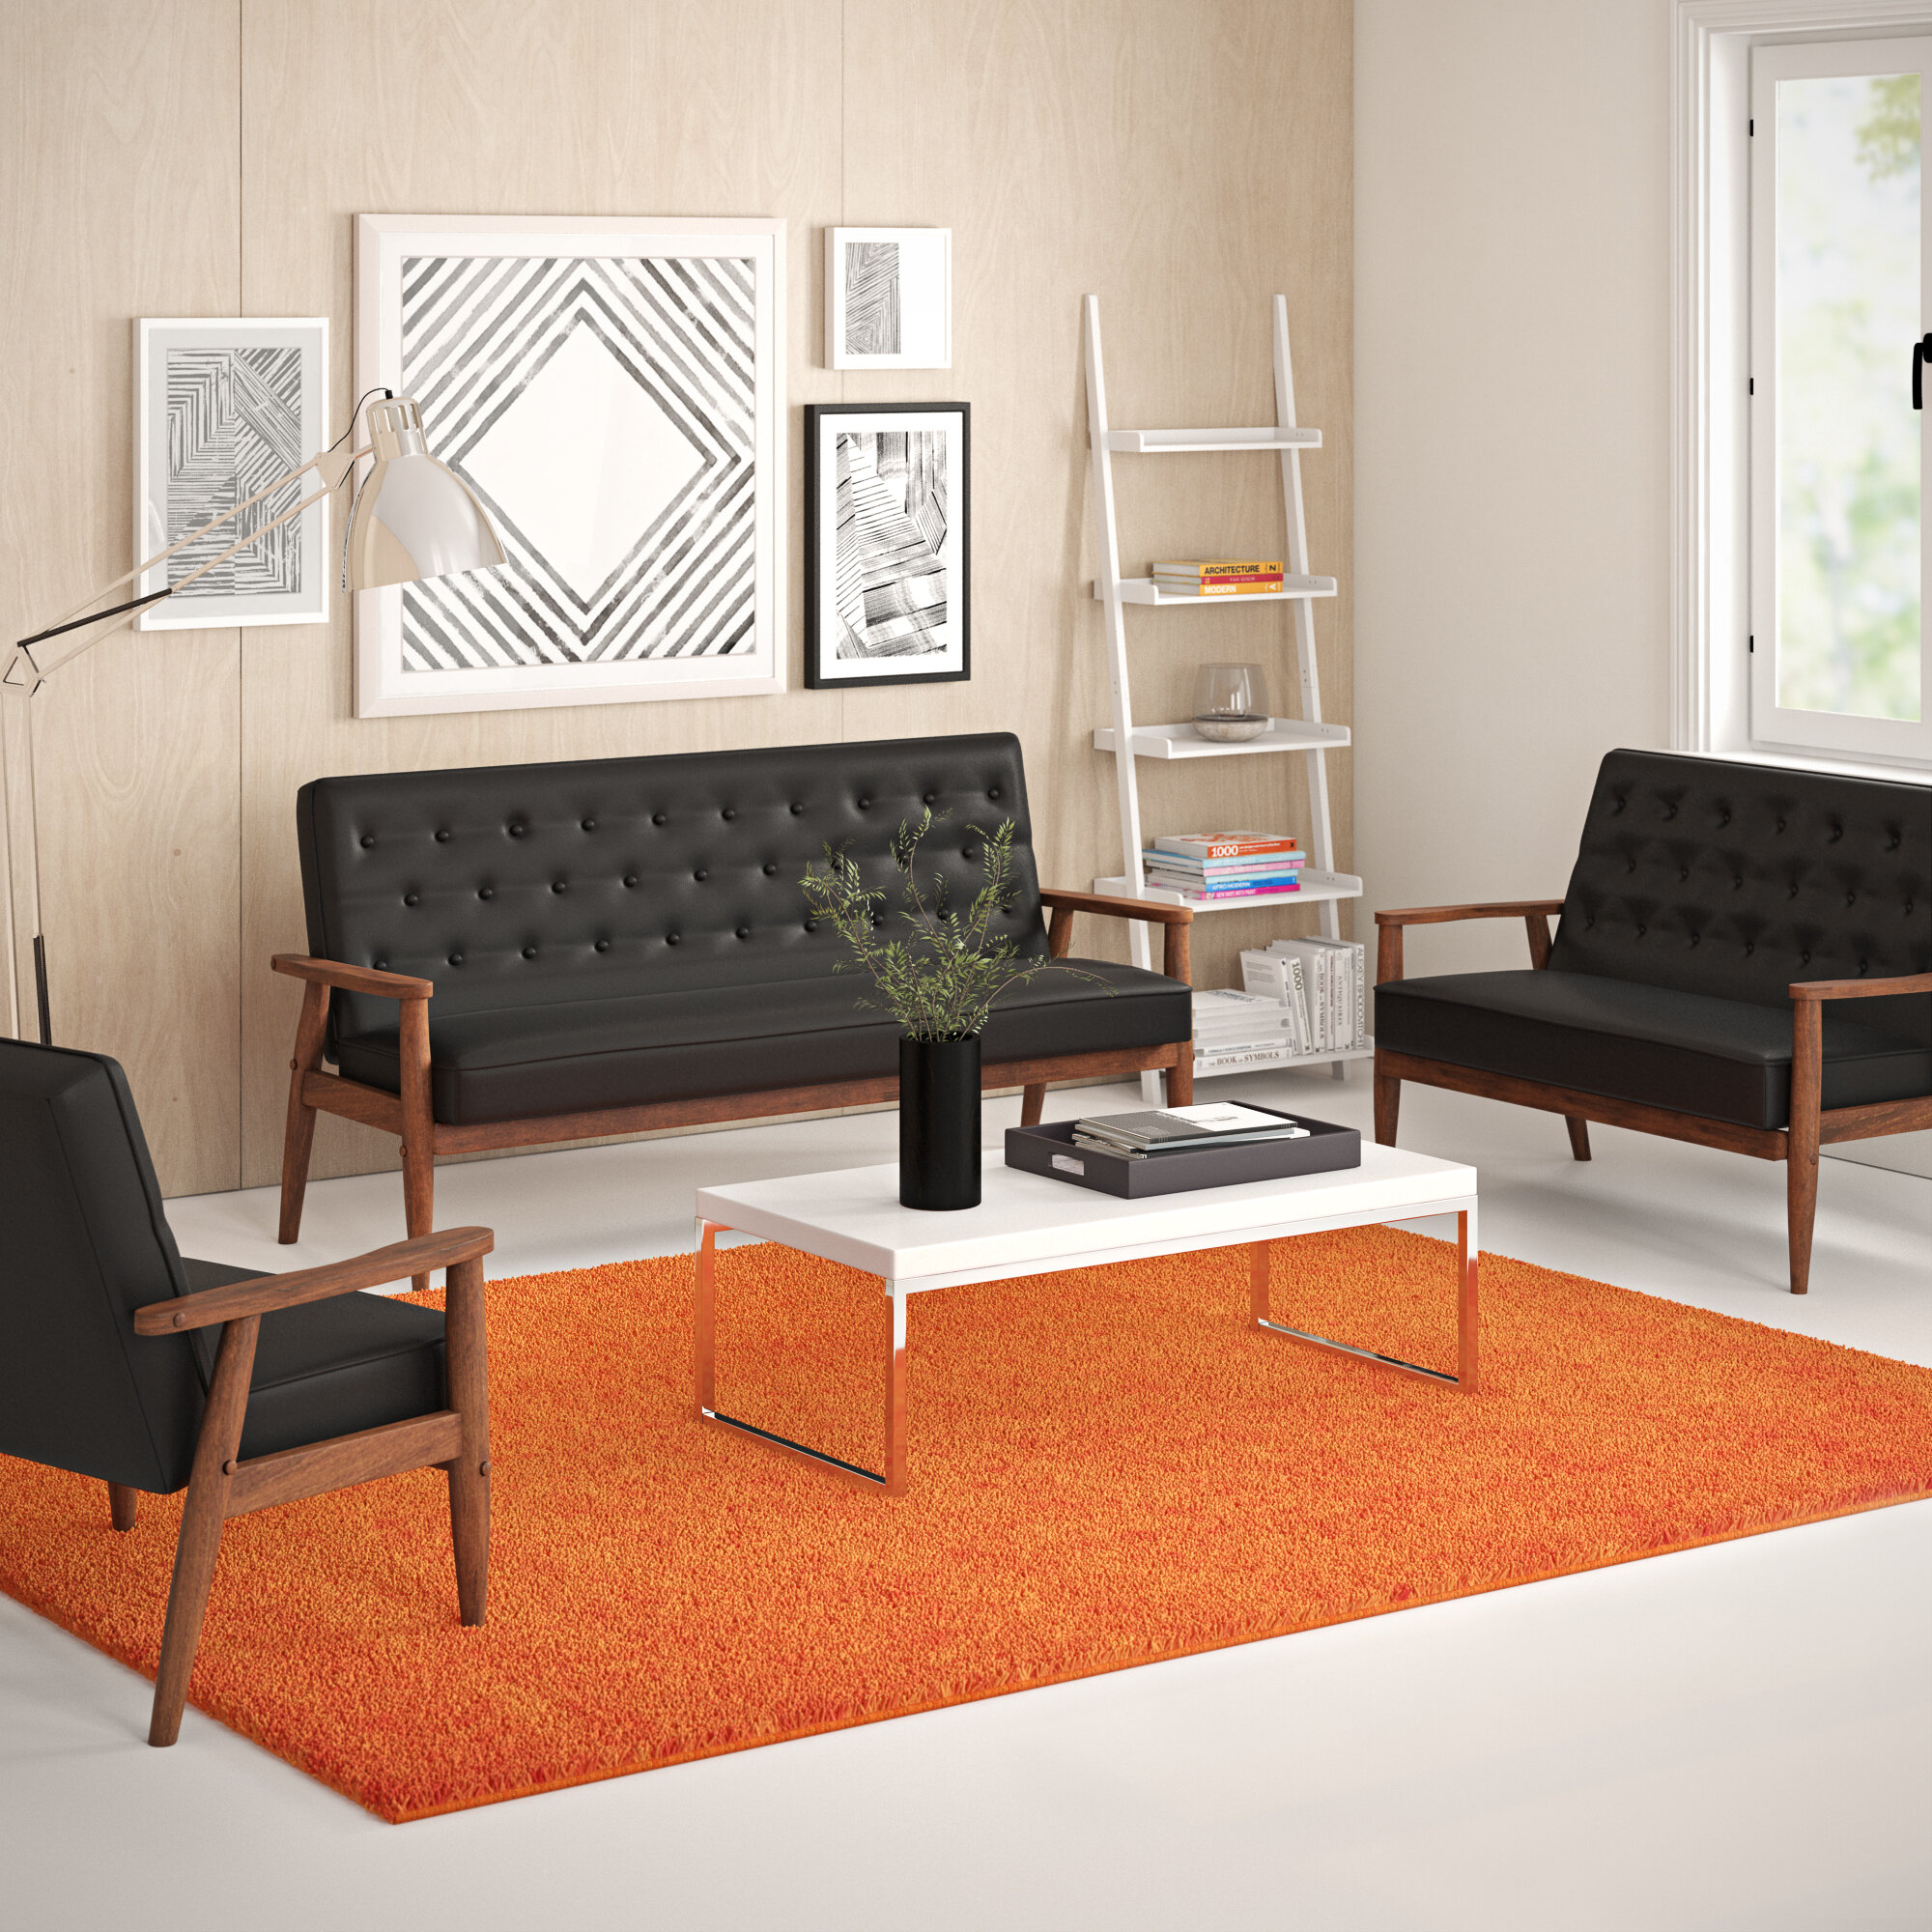 Stupendous Zoee 3 Piece Living Room Set Gamerscity Chair Design For Home Gamerscityorg